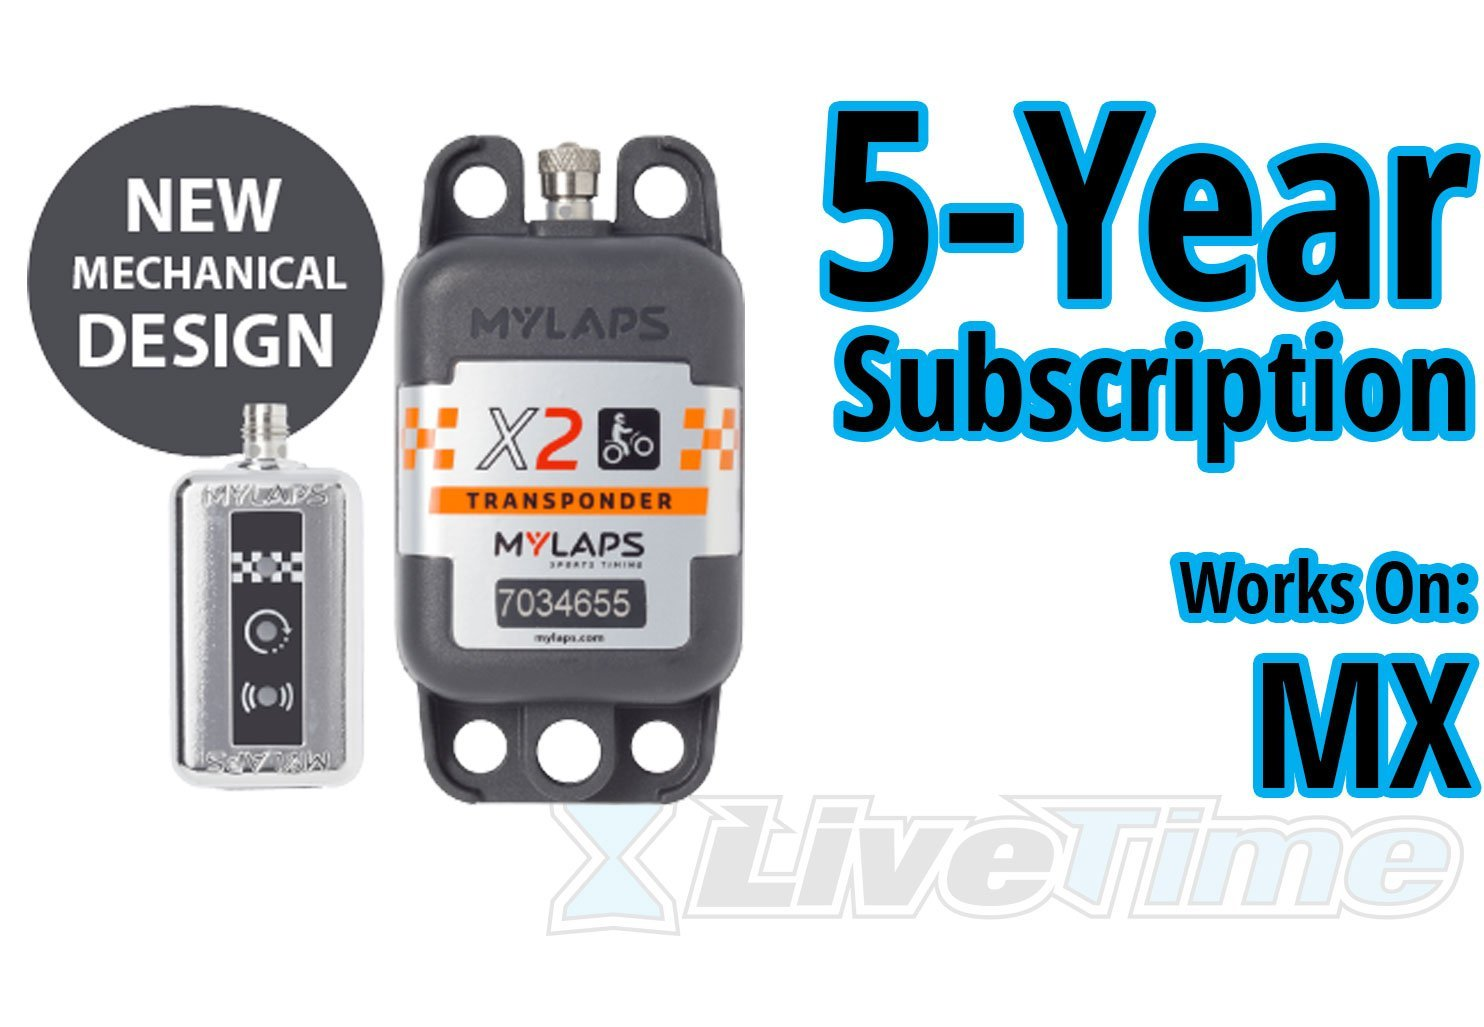 MyLaps X2 Transponder, Rechargeable, for MX (motocross), includes 5-Year Subscription